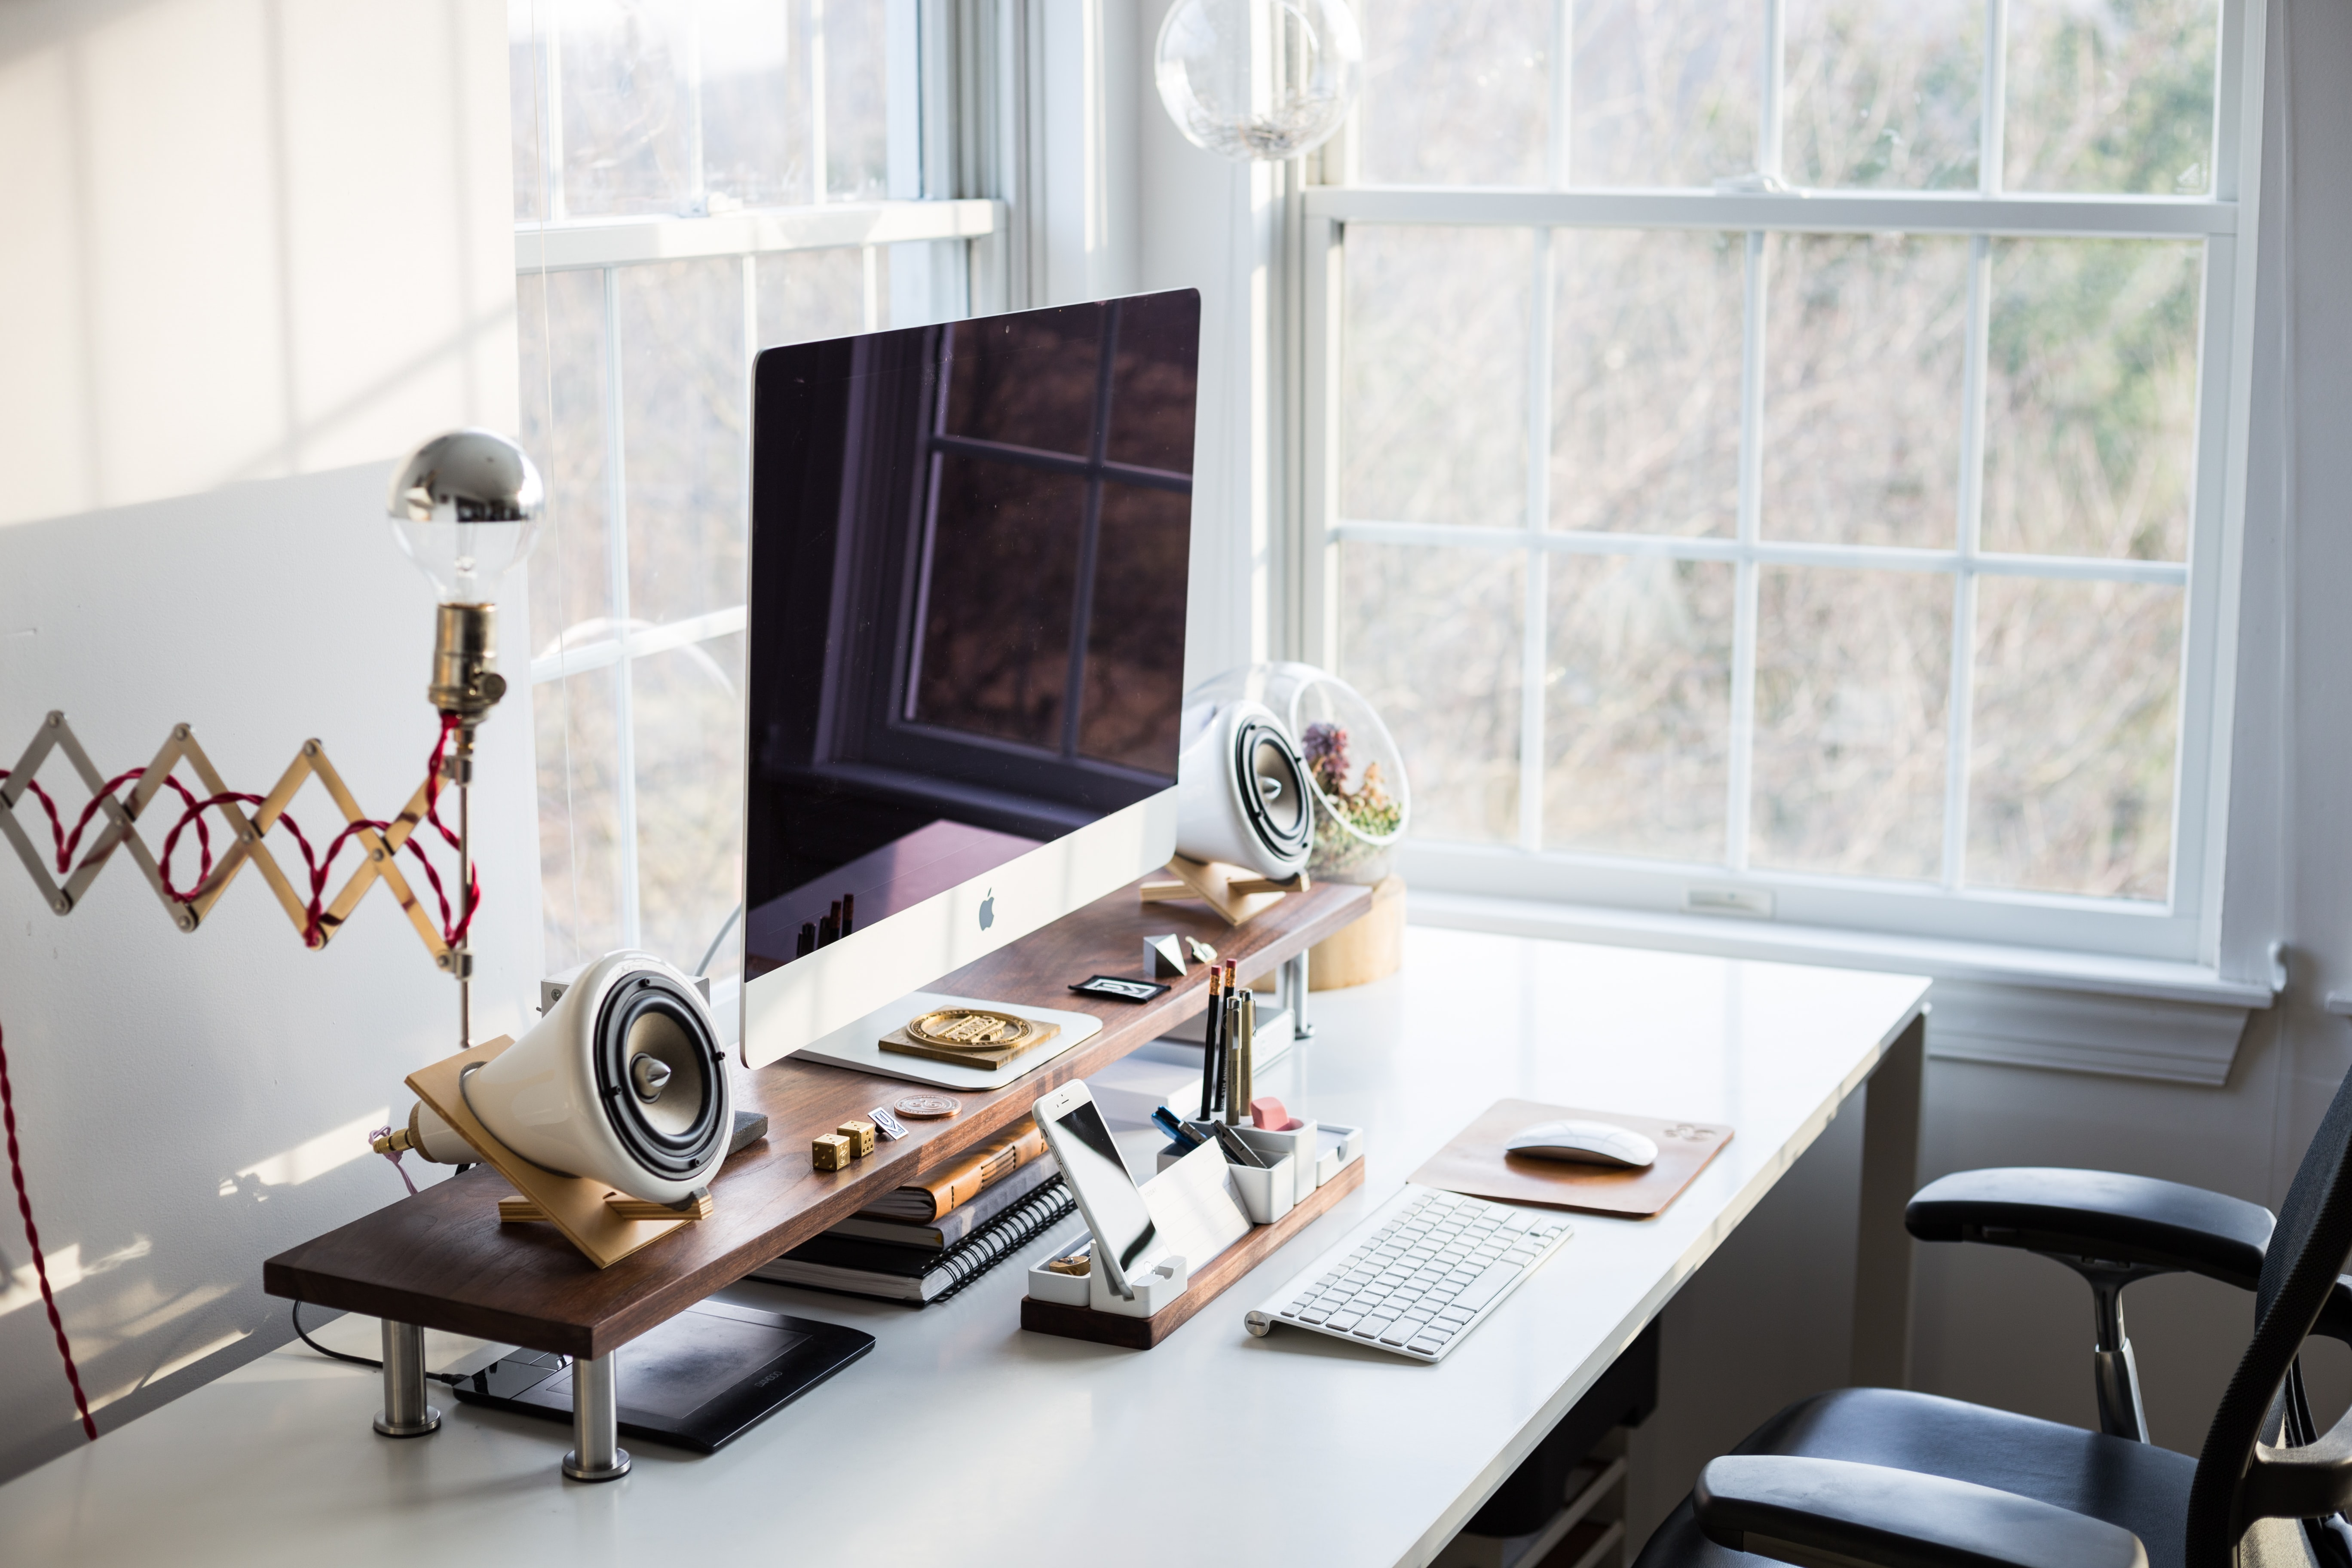 An orderly desk with an iMac and an iPhone in a bright room corner with two windows